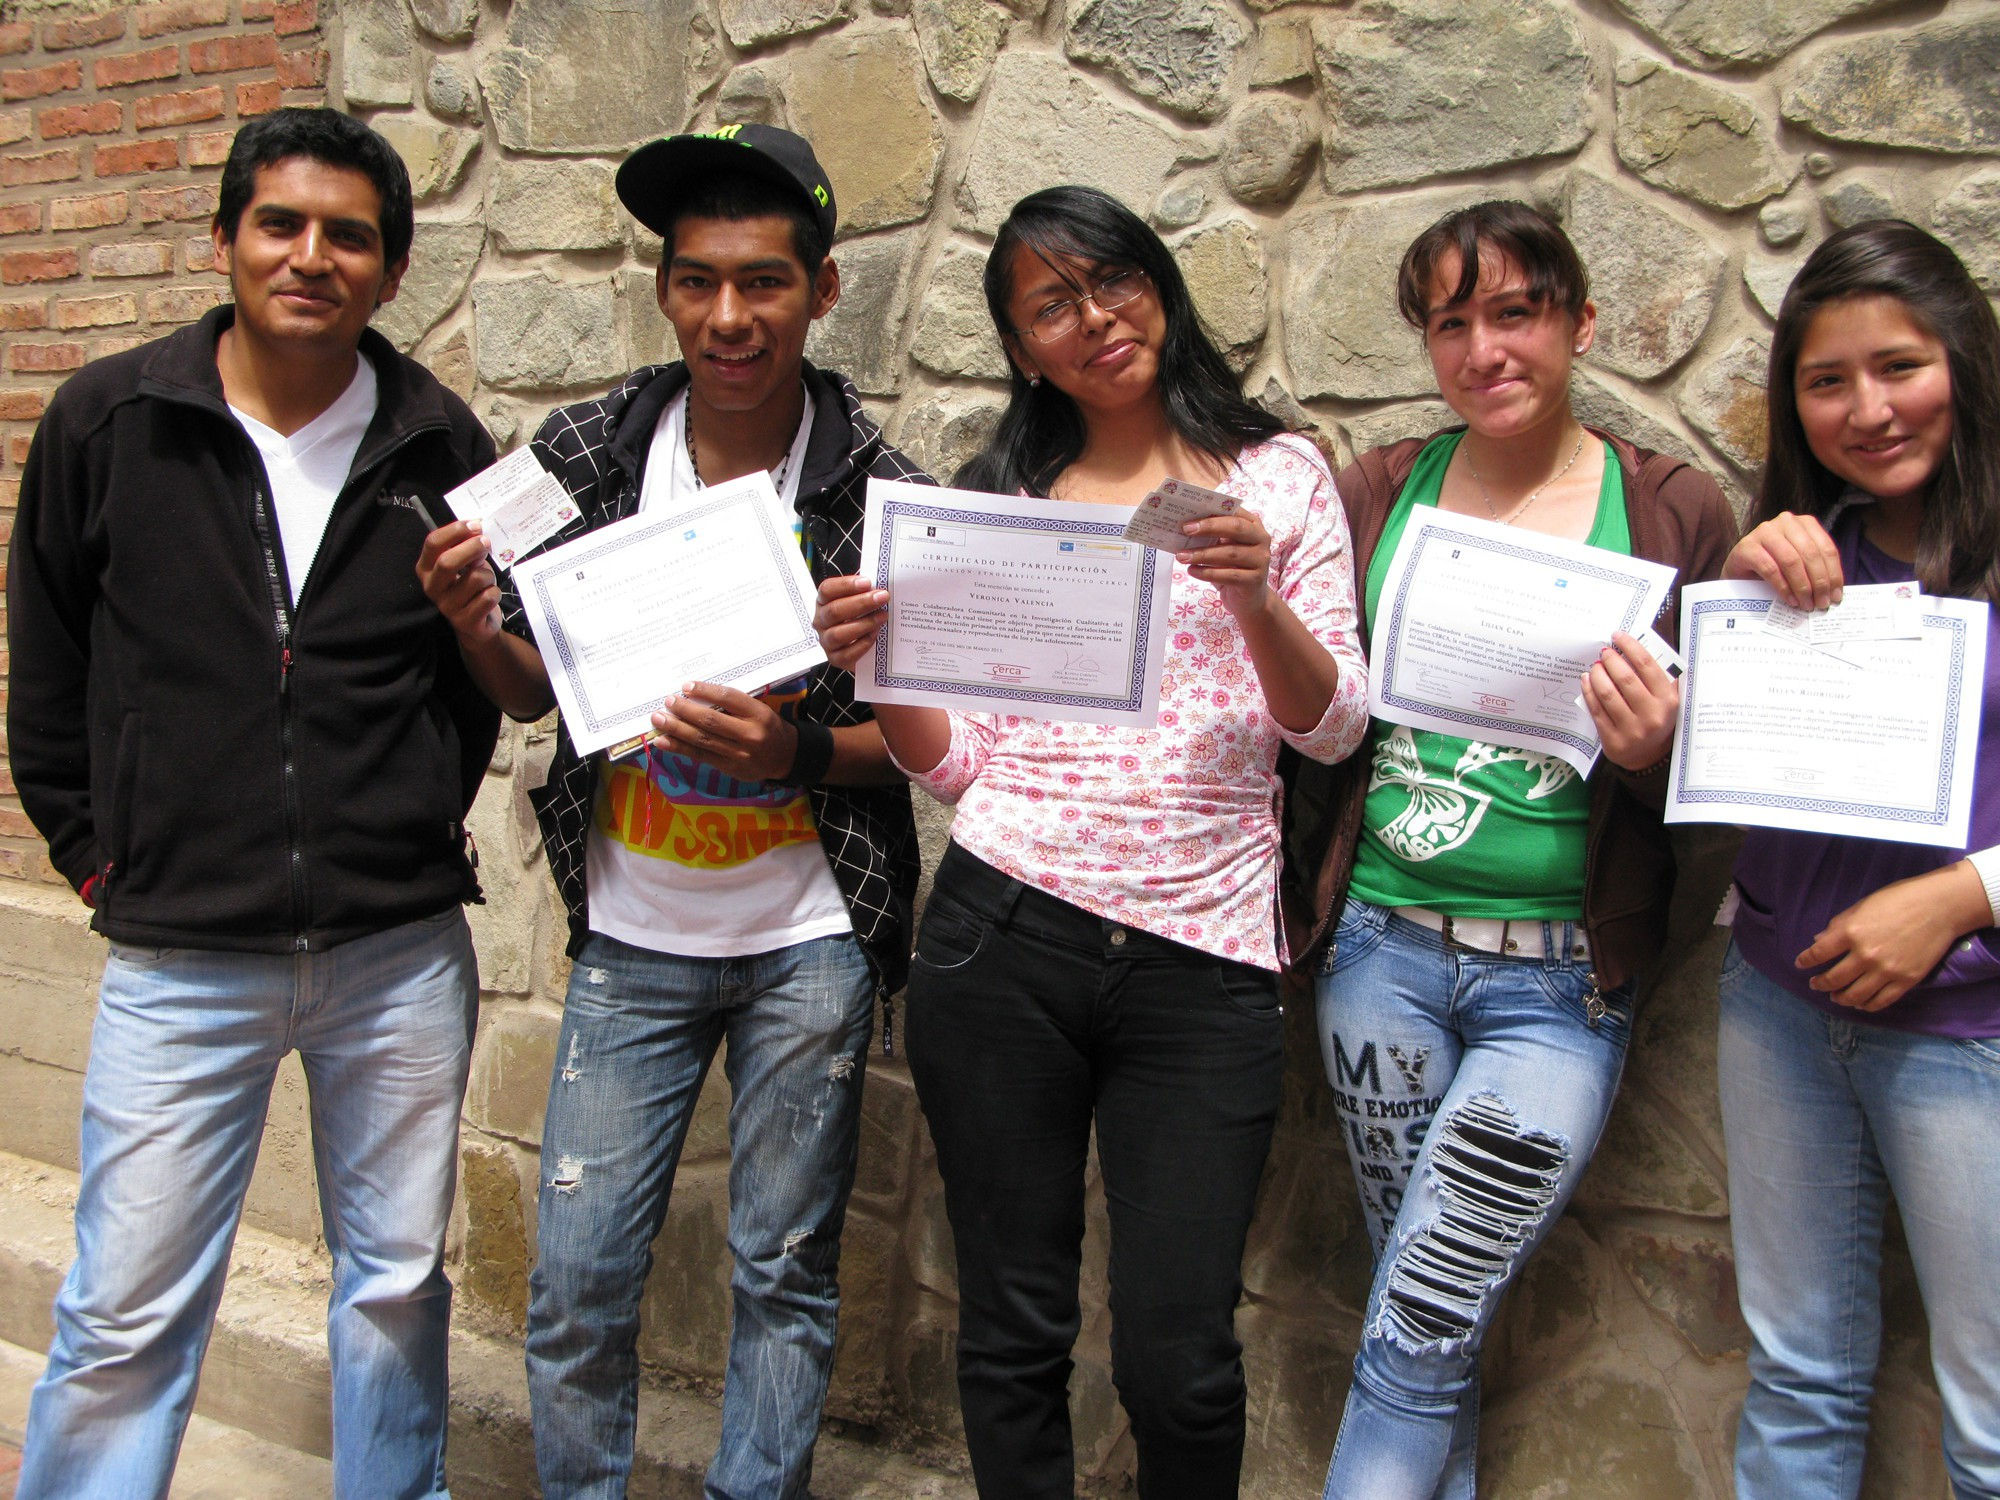 CERCA, Community-embedded reproductive health care for adolescents in Latin America